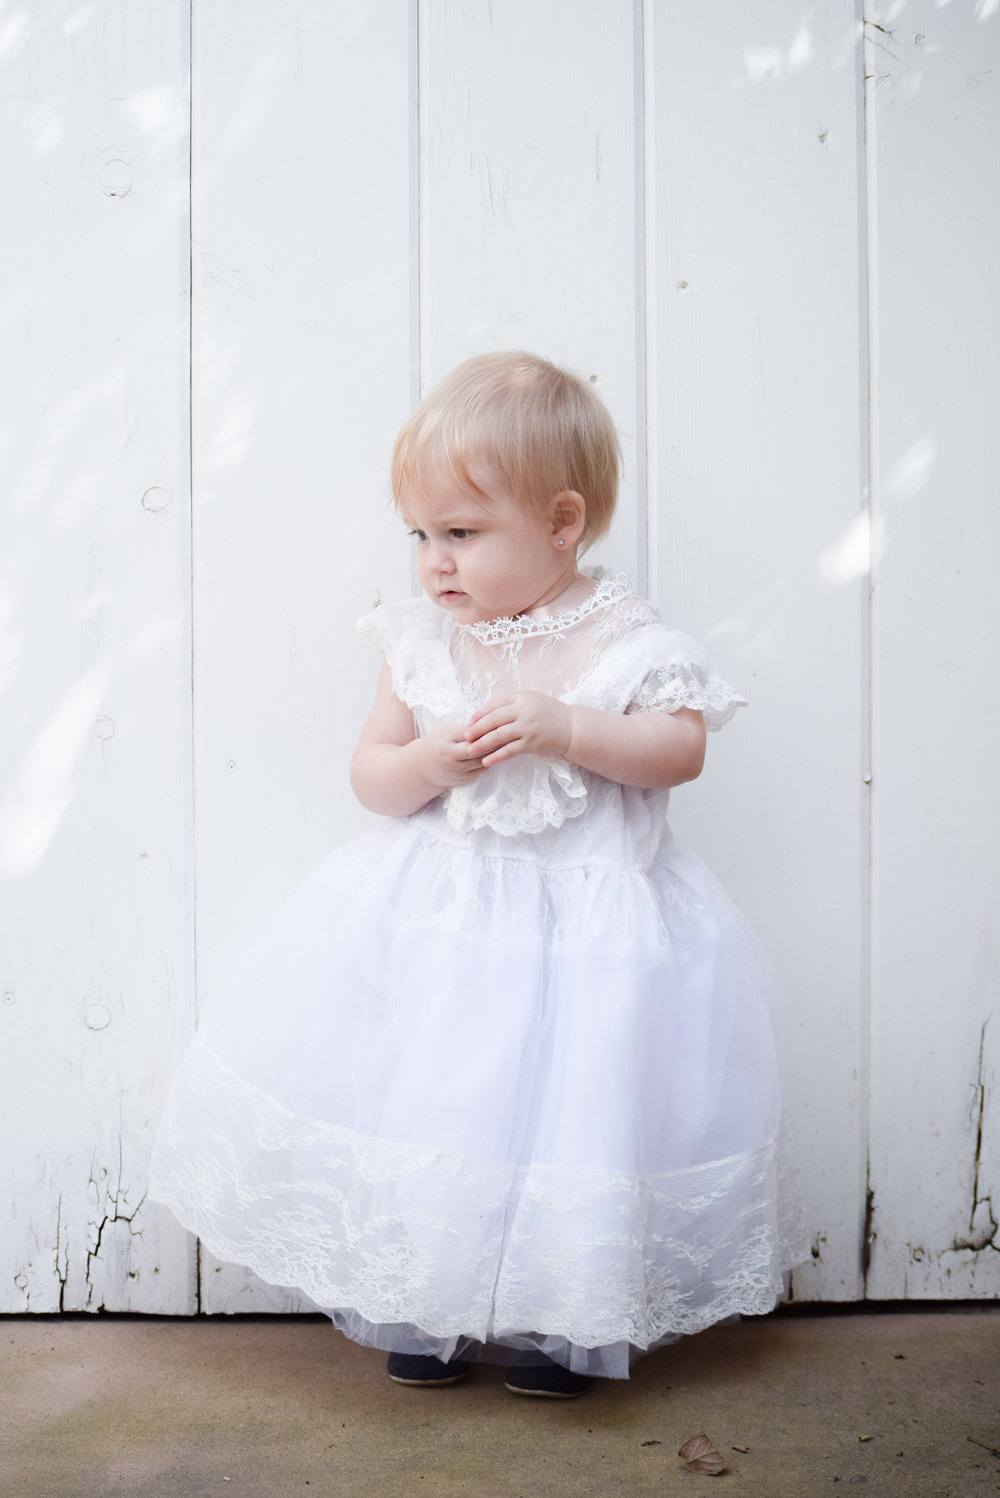 White Vintage Lace Flower Girl Dress - The Hair Bow Company